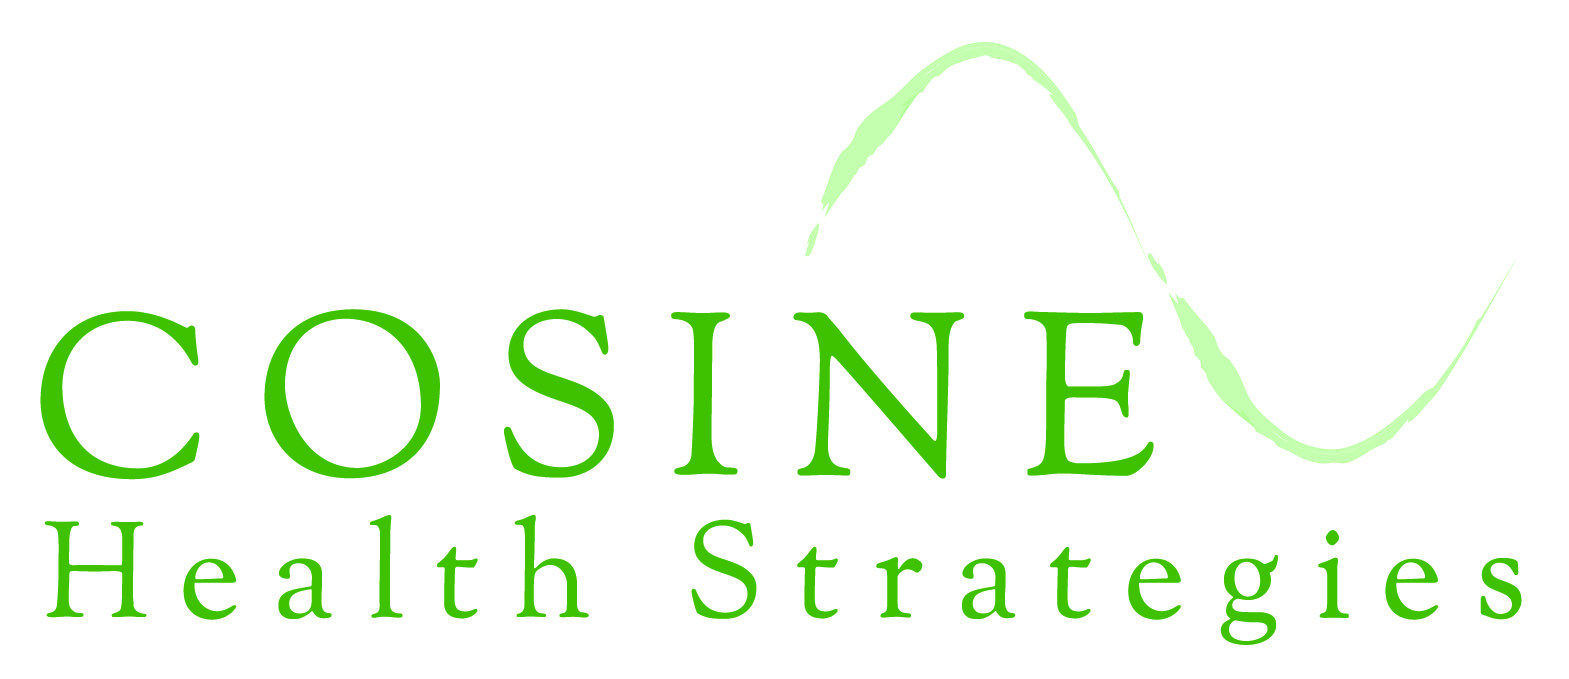 Cosine Health Strategies, LLC